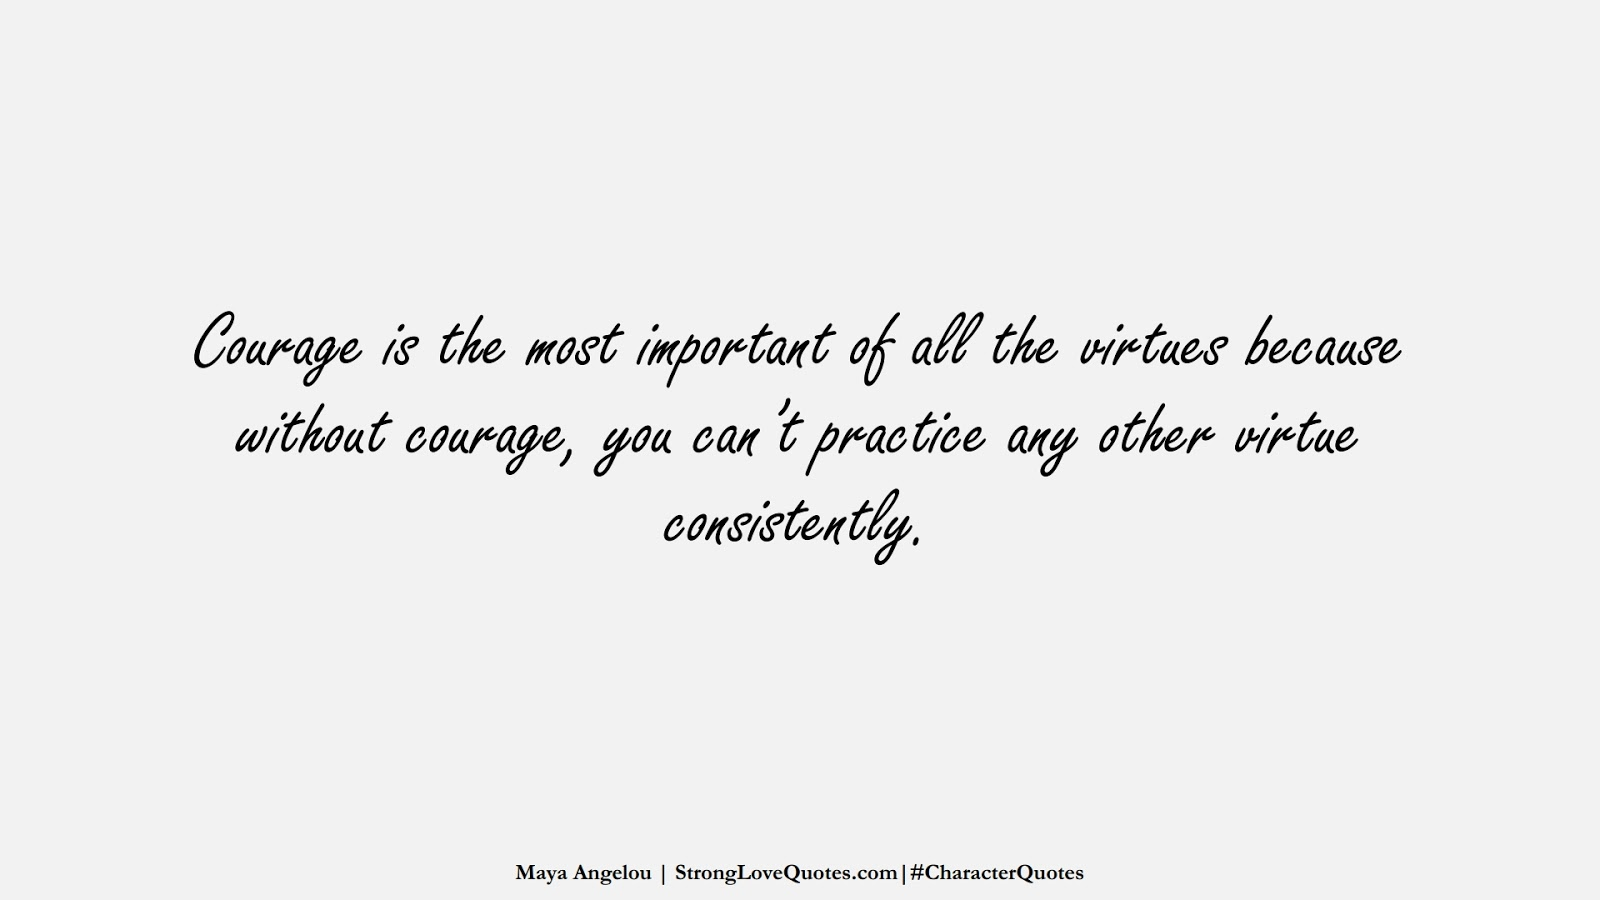 Courage is the most important of all the virtues because without courage, you can't practice any other virtue consistently. (Maya Angelou);  #CharacterQuotes